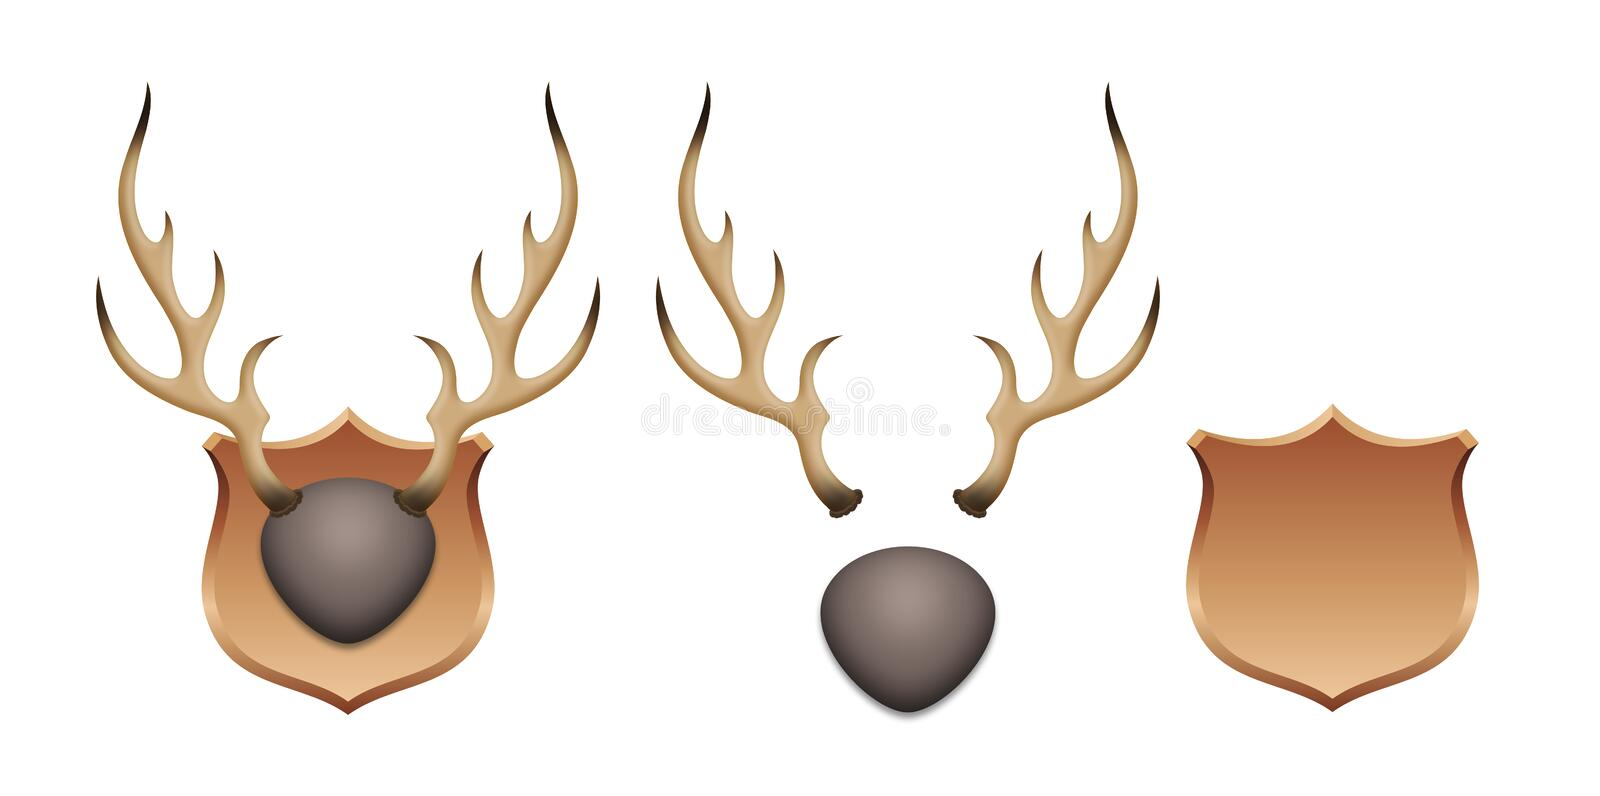 Deer antlers on the wall. Deer antlers on a wall design with all graphic elements separated on white background vector illustration